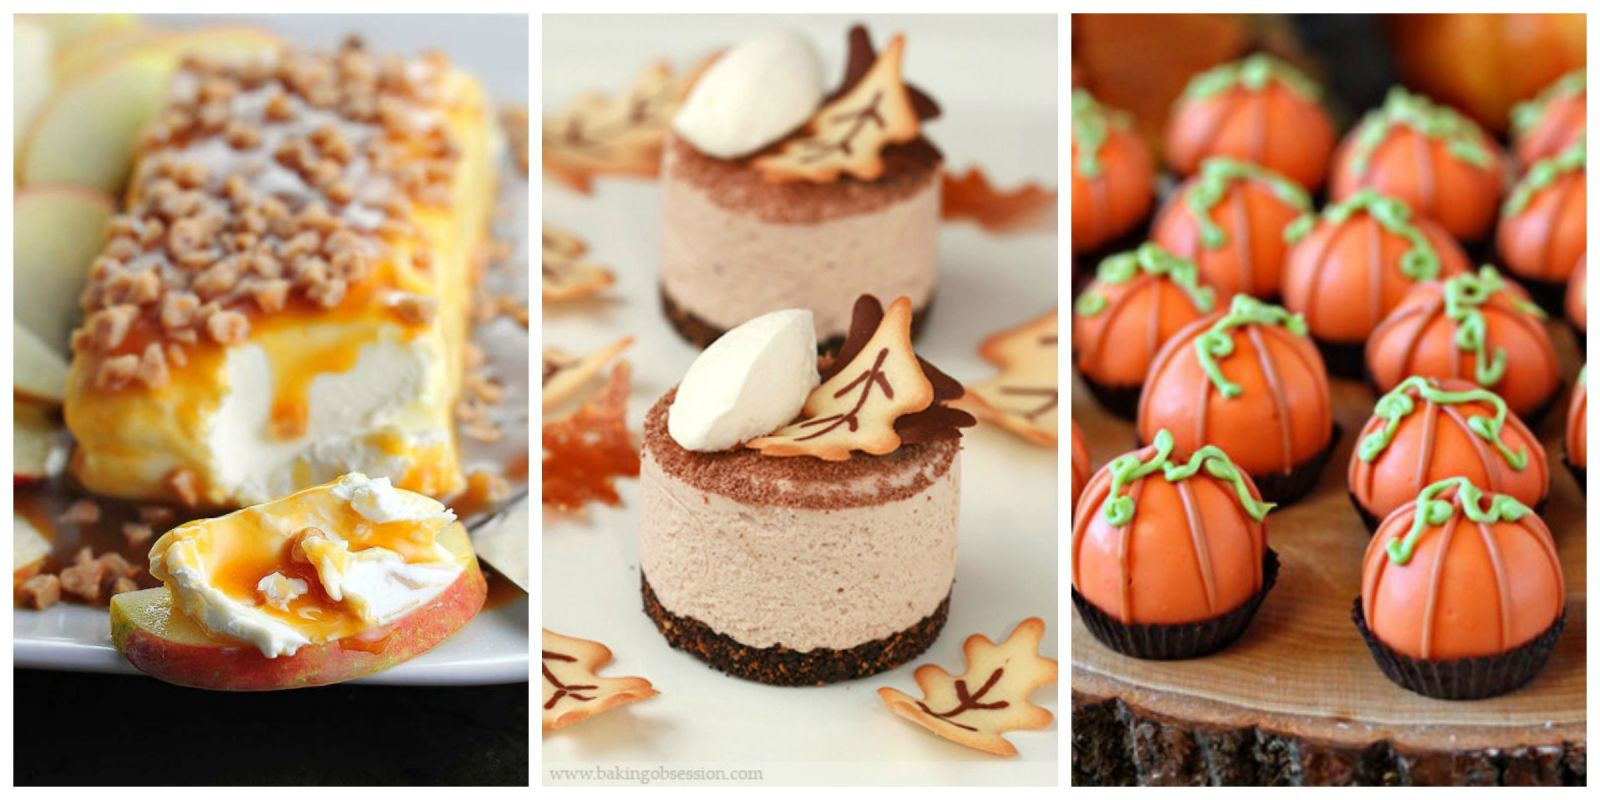 Desserts For Fall  35 Easy Fall Dessert Recipes Best Treats for Autumn Parties